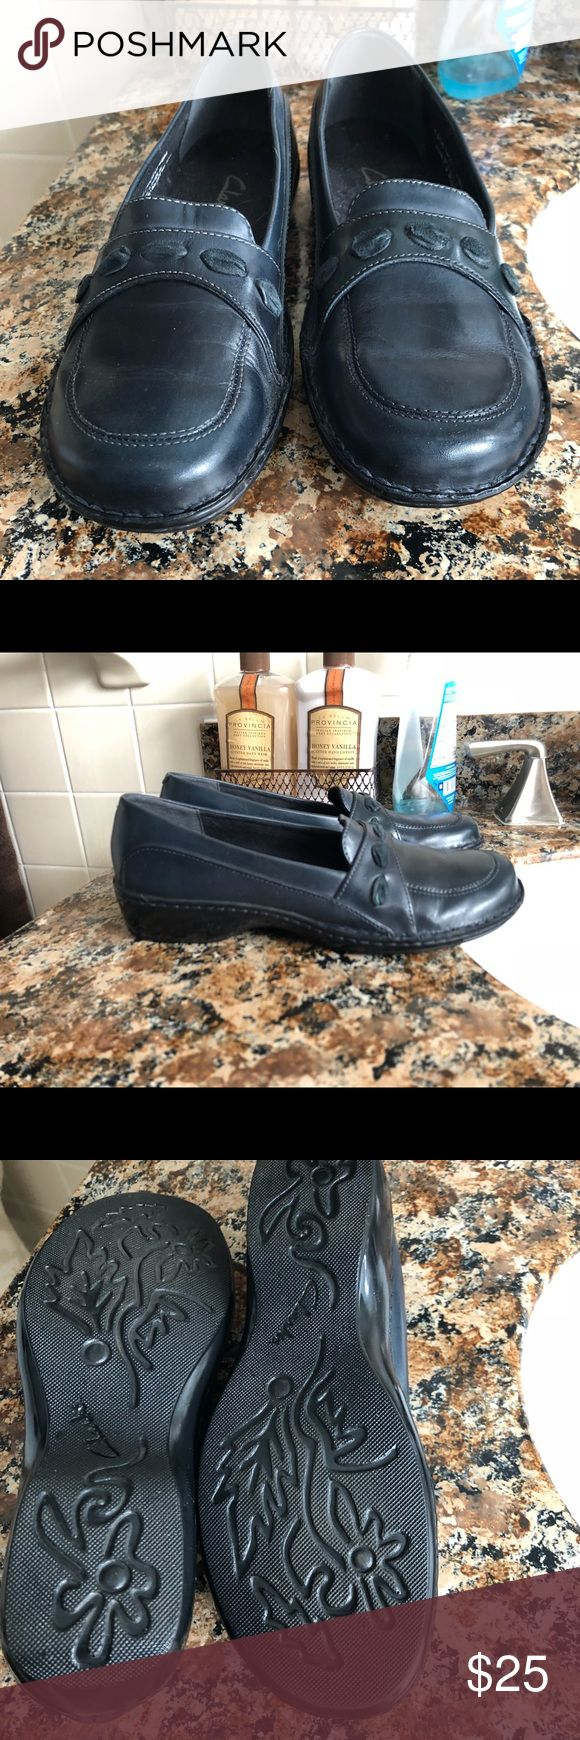 Navy blue Clark shoes, size 6M Worn one time. Clarks Shoes Flats & Loafers